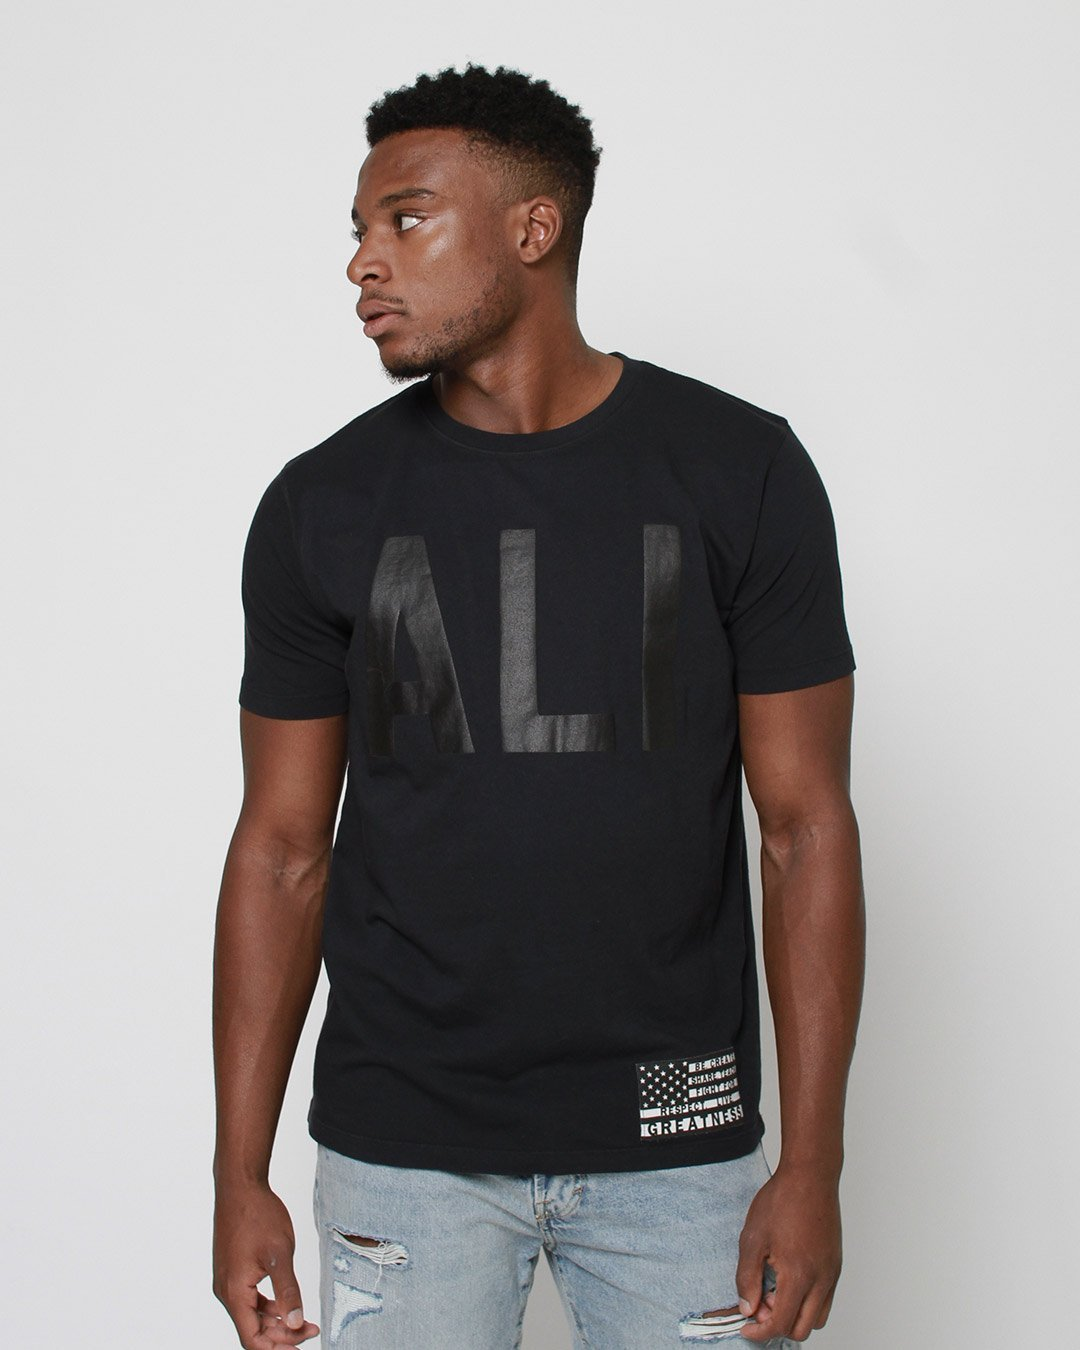 Ali Legacy Monochrome Tee - Roots of Inc dba Roots of Fight